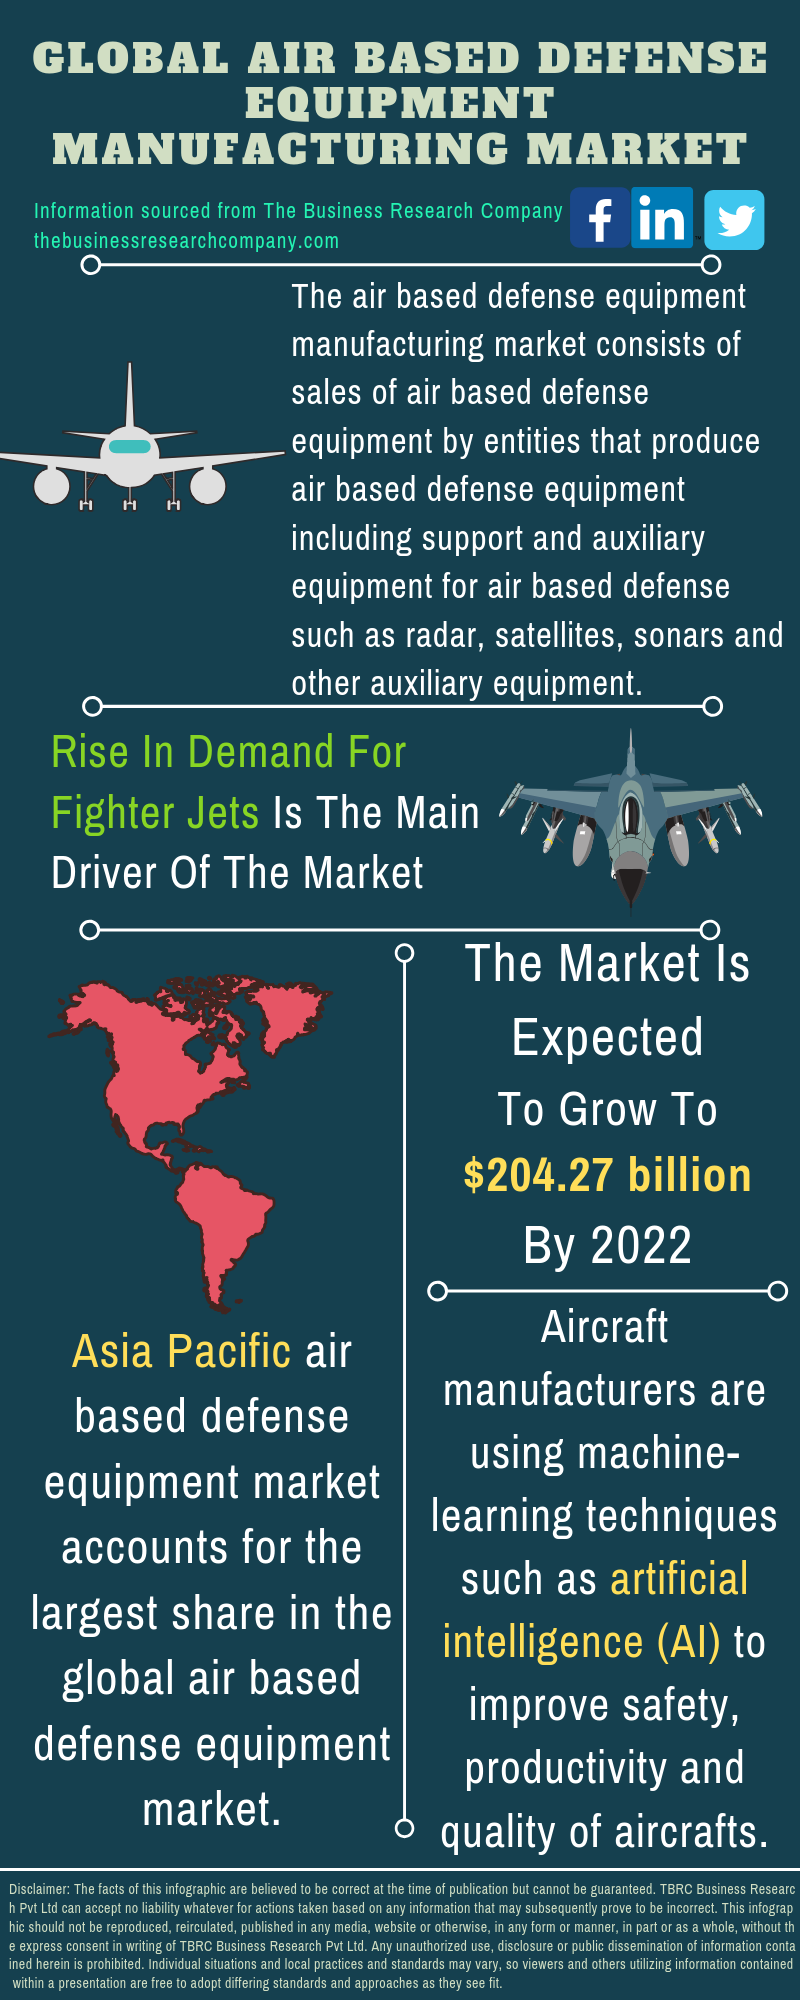 Air based Defense Equipment Market